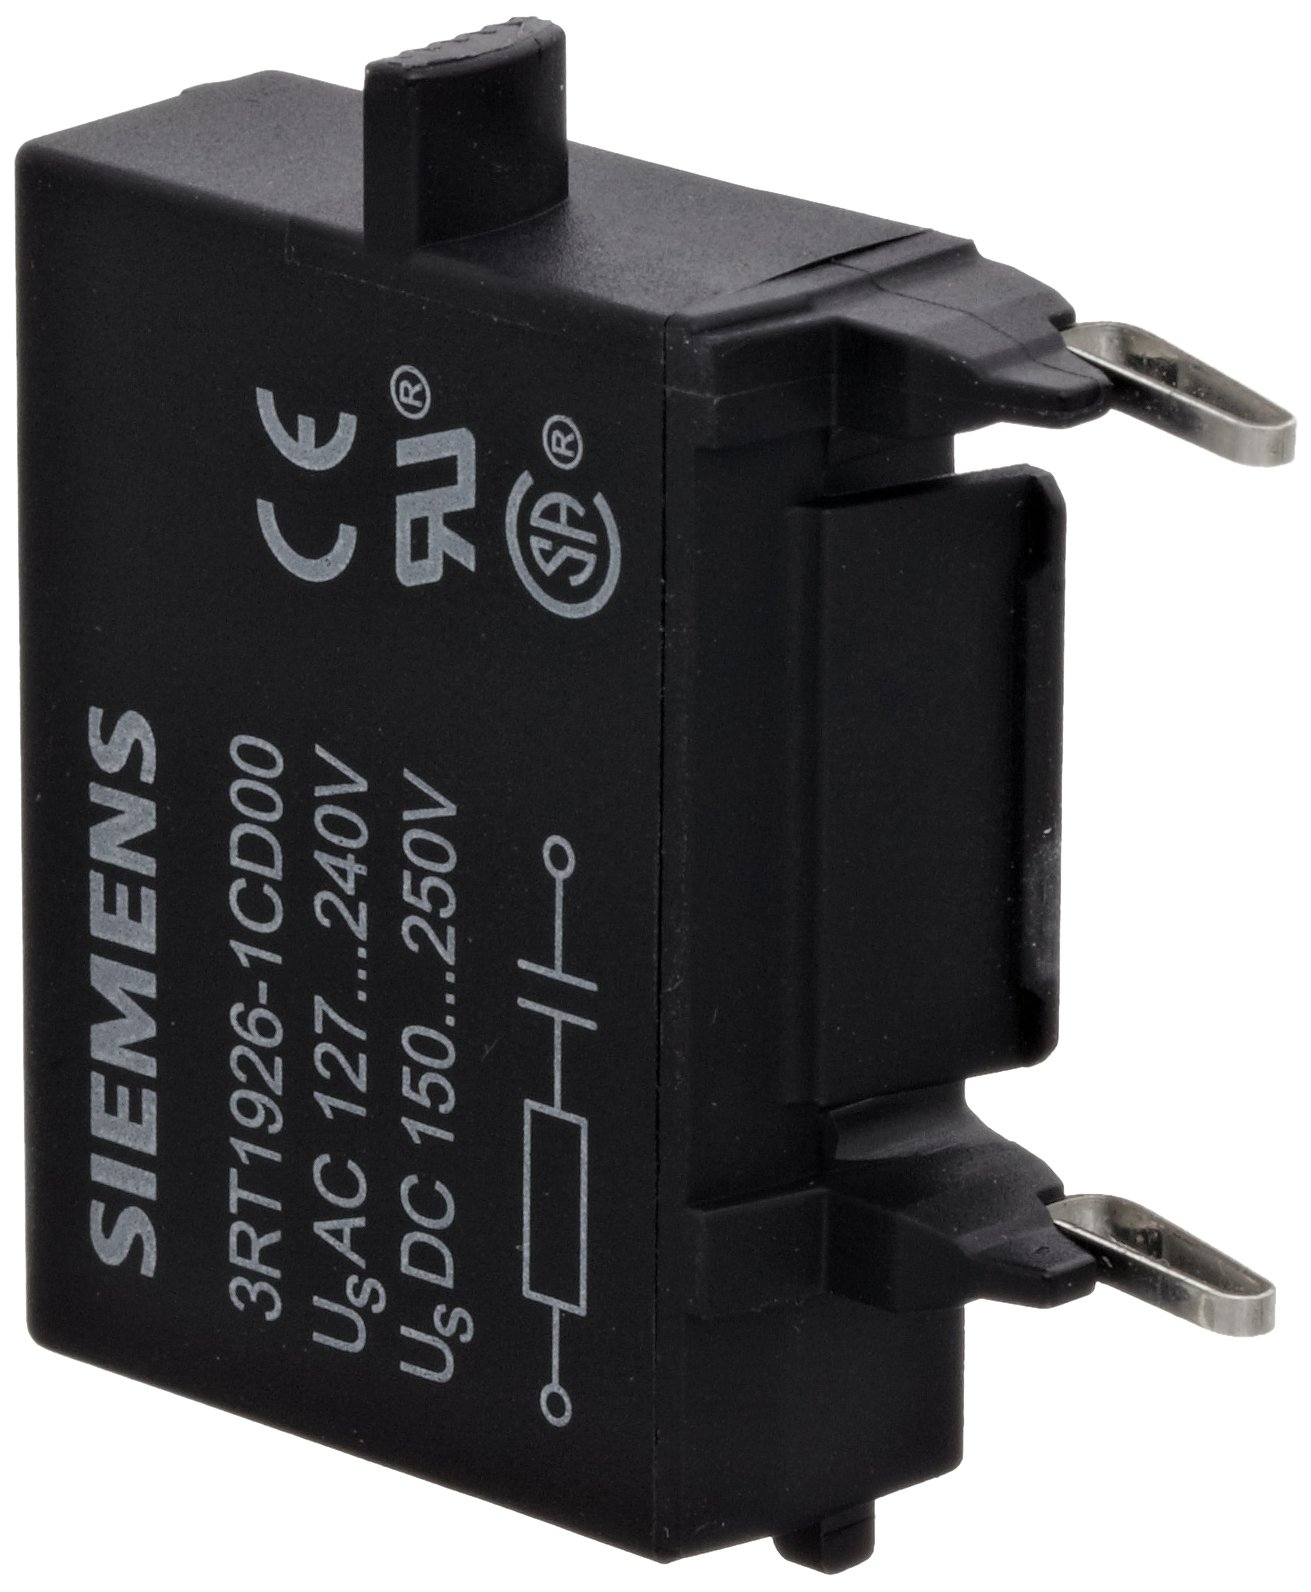 Siemens 3RT19 26-1CD00 Surge Suppressor, RC Element Design, S0 Size, 127-240VAC Rated Control Supply Voltage